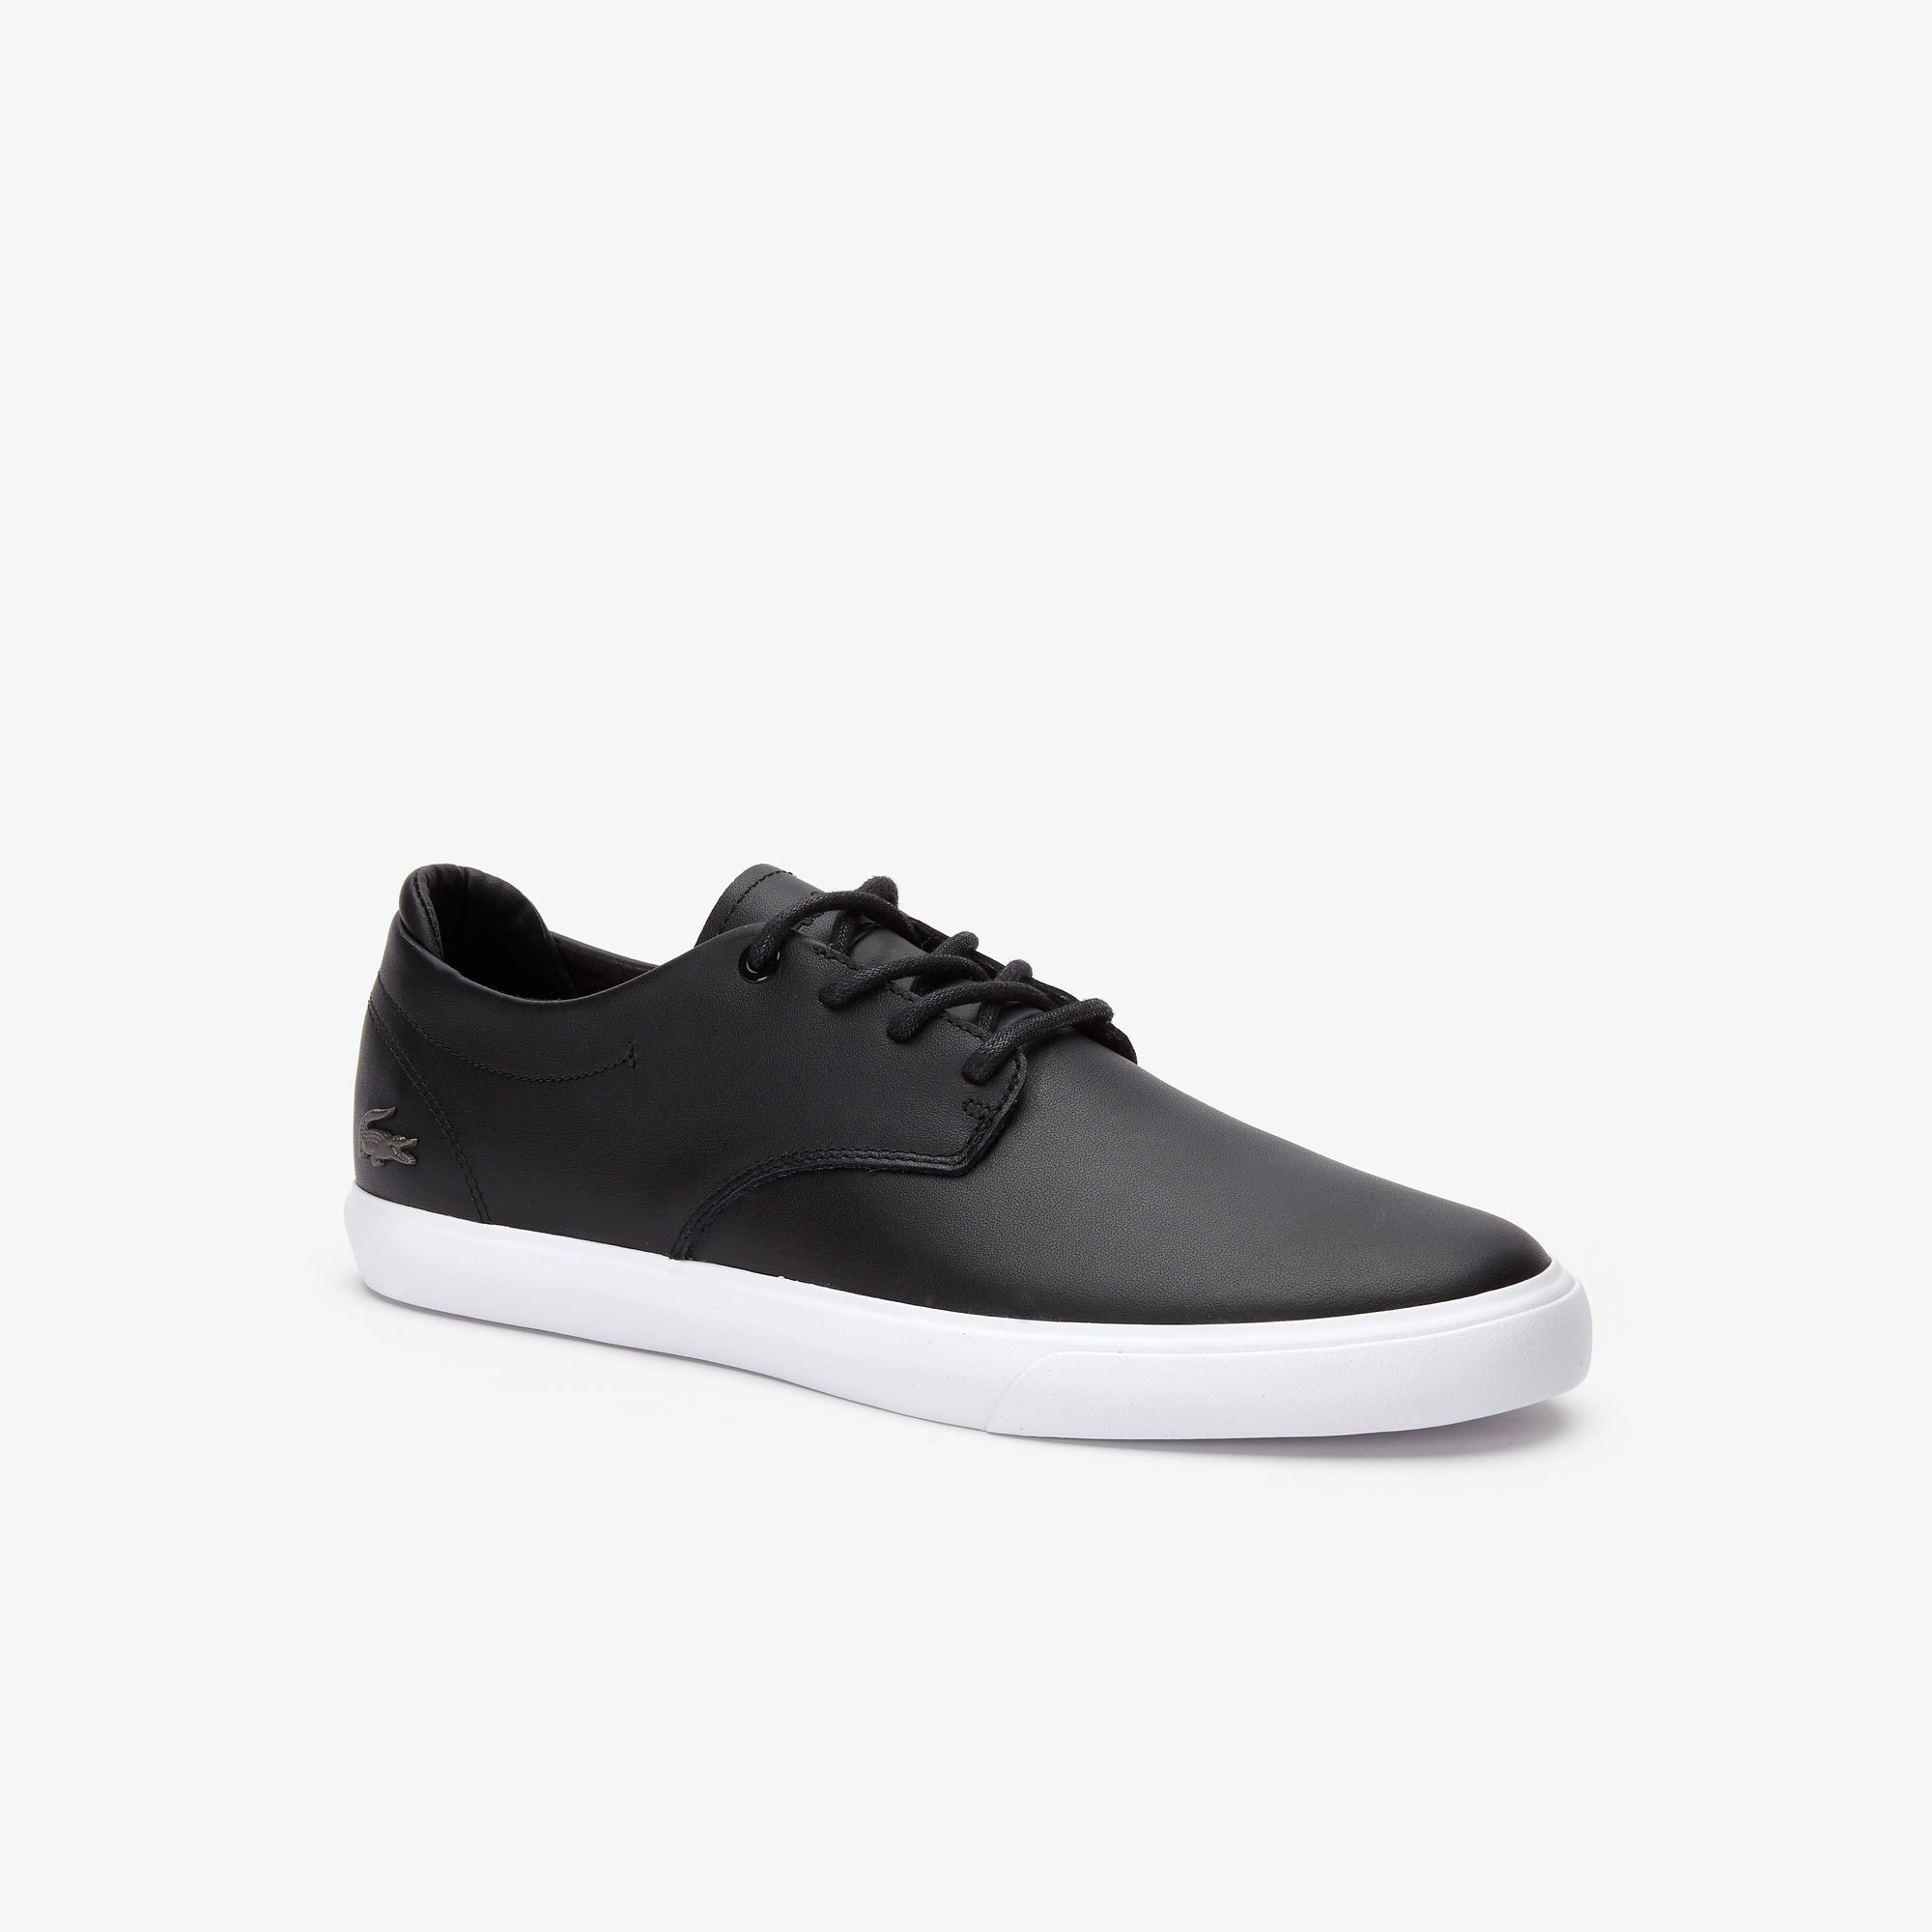 e42fbe8578 Chaussures Homme   Chaussures pour Homme   LACOSTE